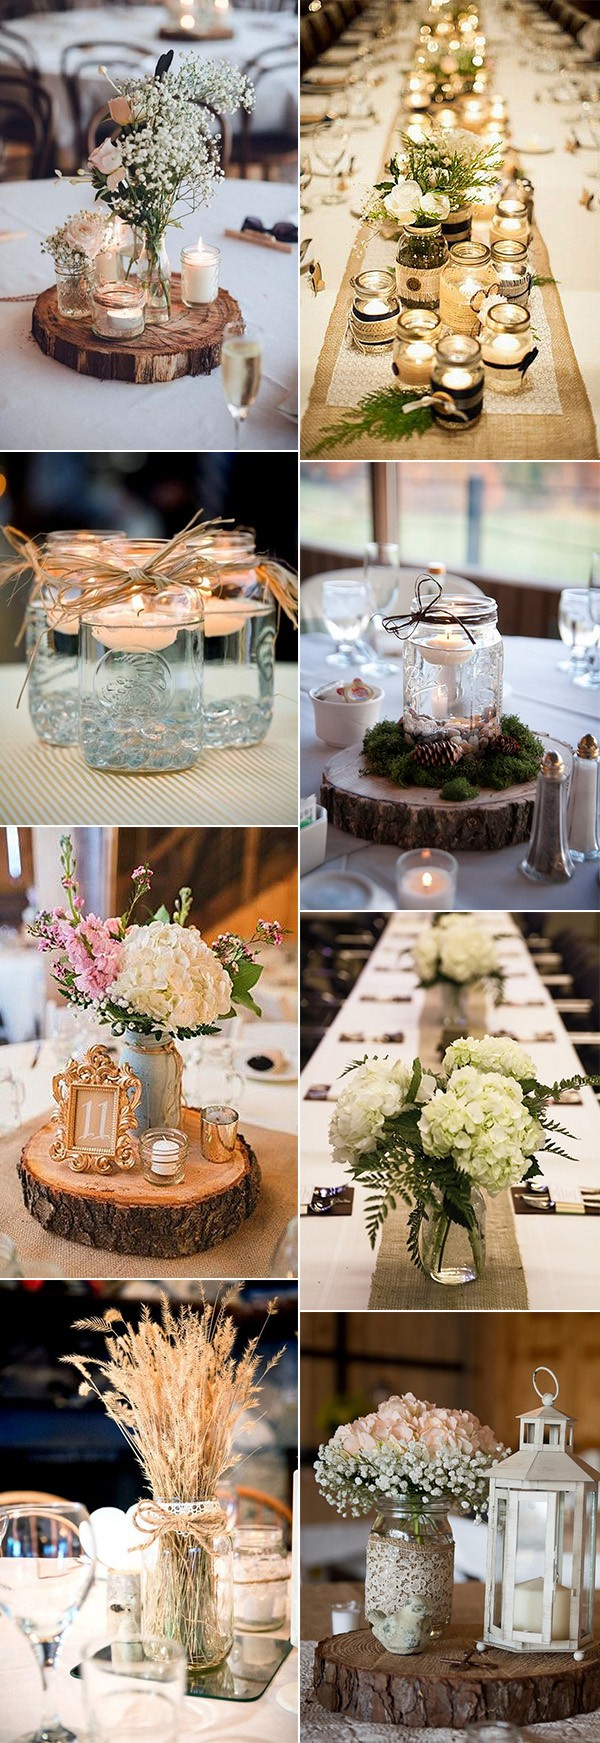 18 Gorgeous Mason Jars Wedding Centerpiece Ideas for Your Big Day ...